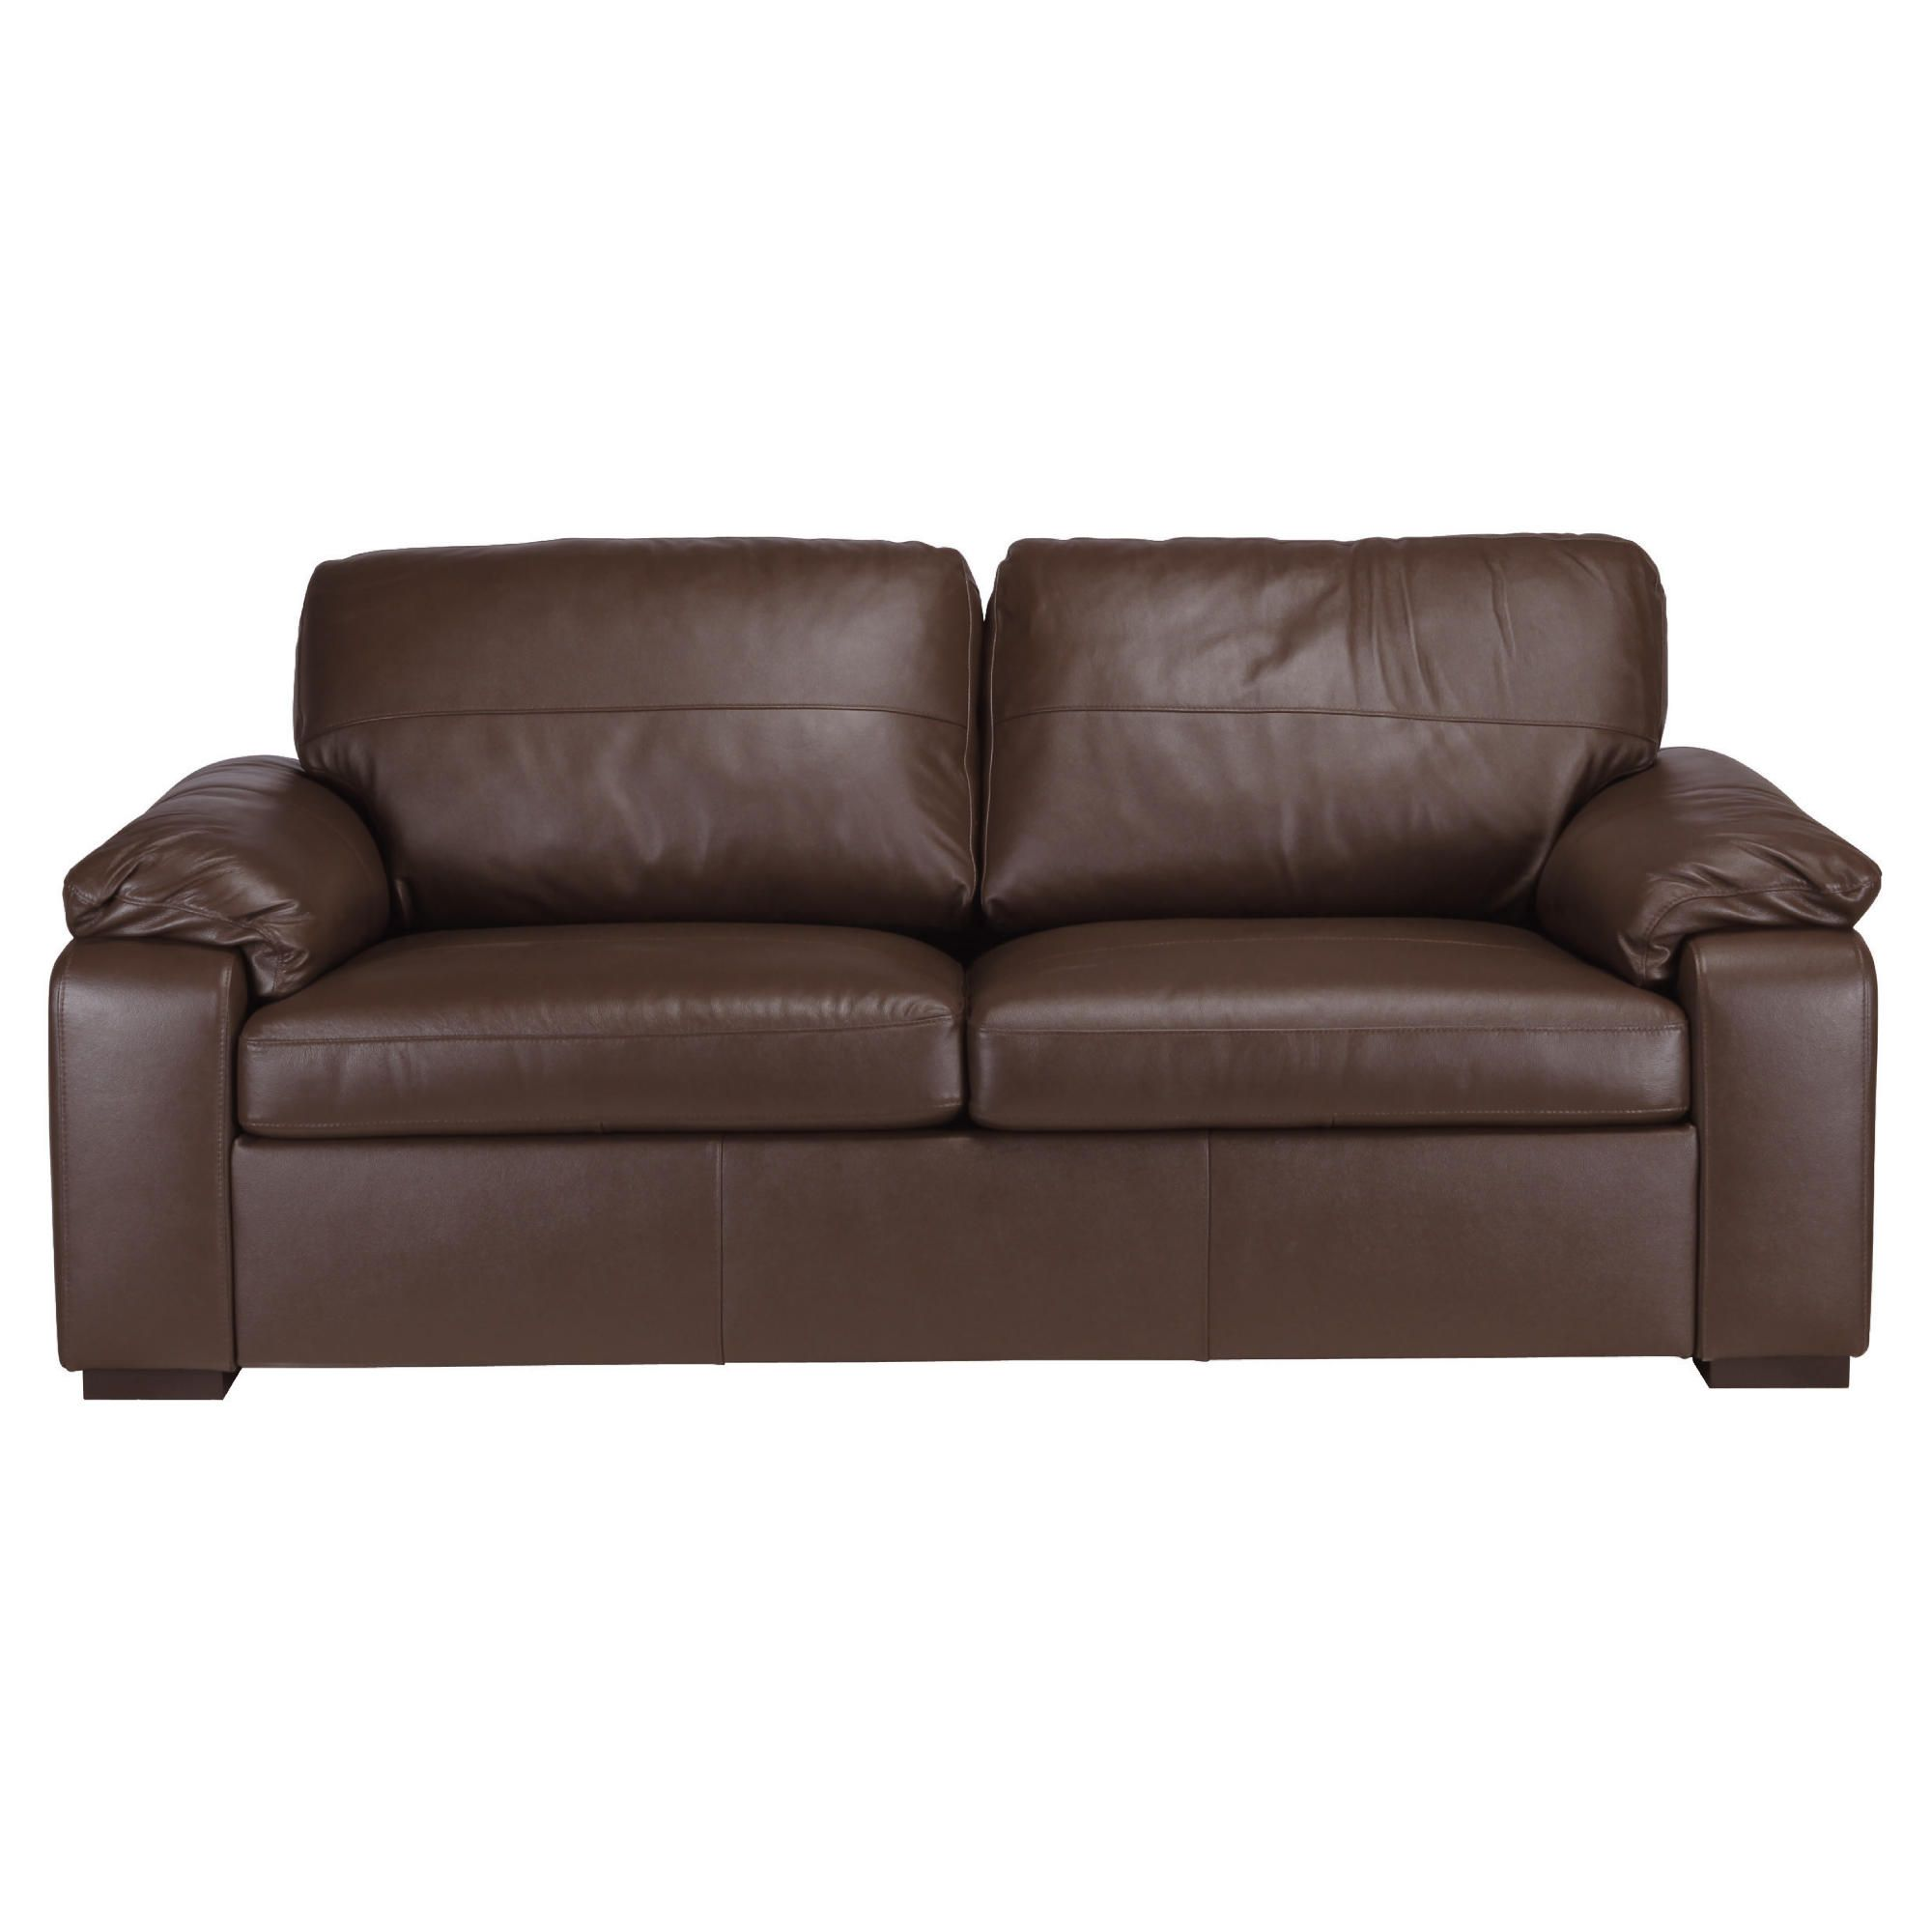 Ashmore Leather Sofa Bed, Brown at Tesco Direct